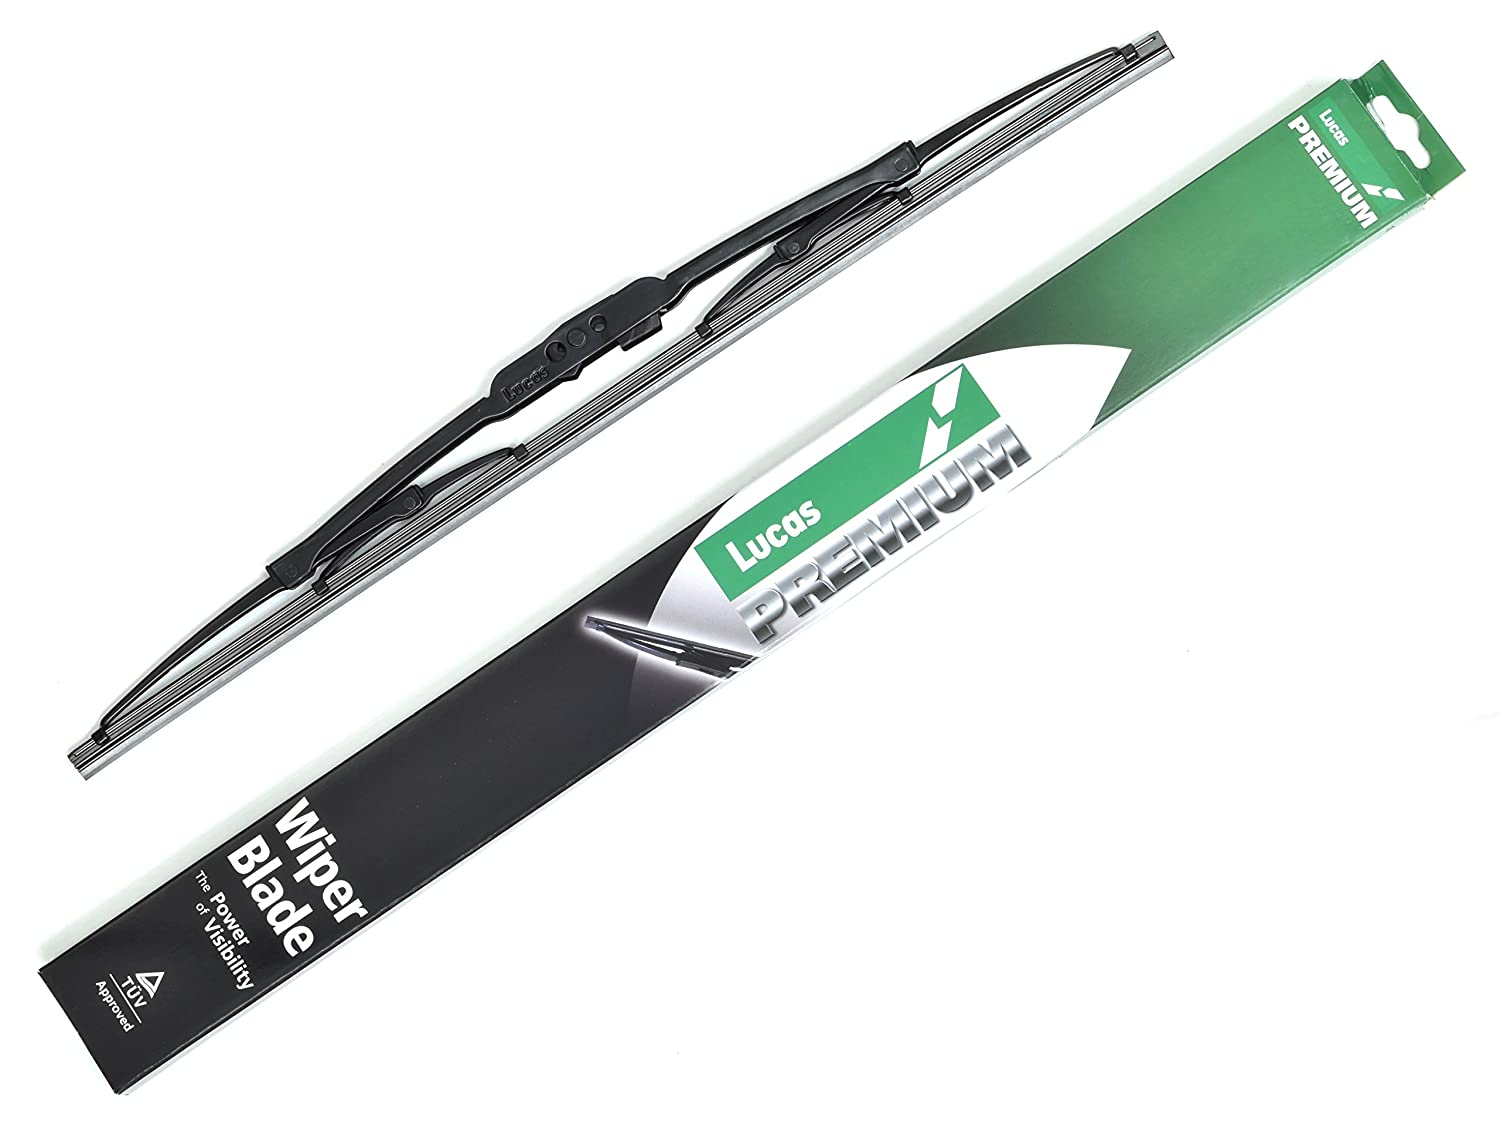 Lucas Electrical 17 Conventional Wiper Blade LWCB17